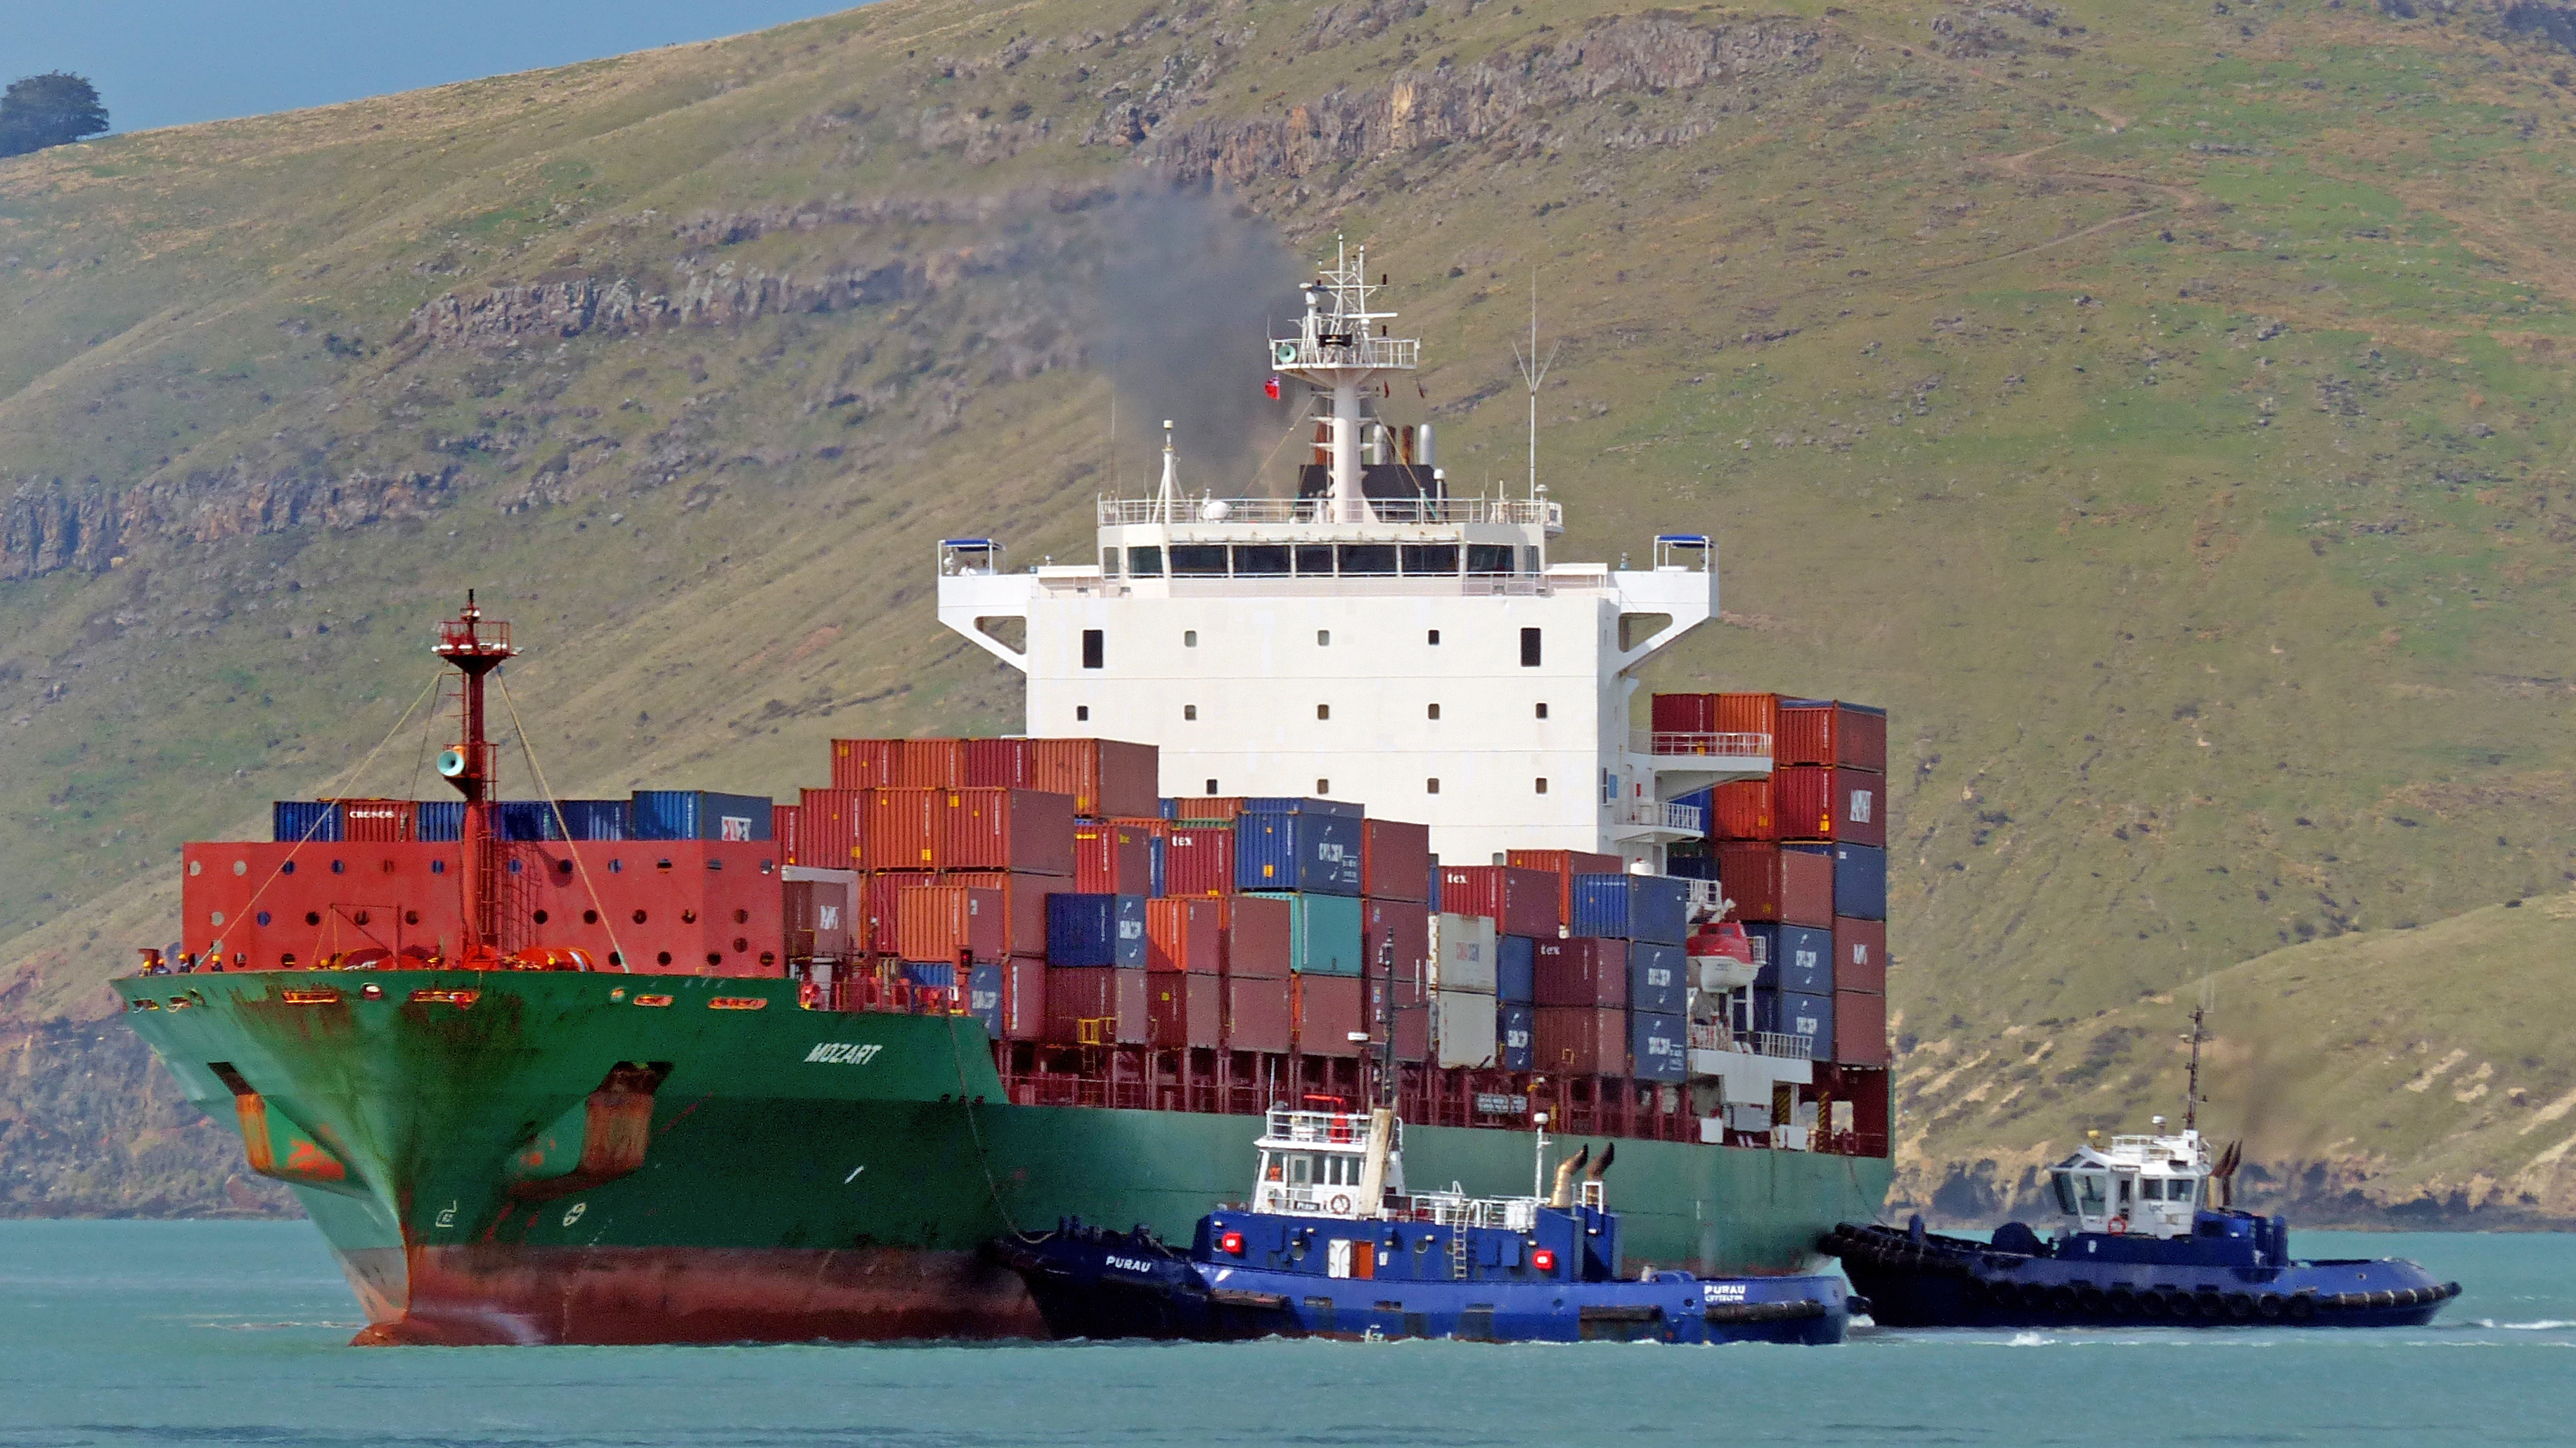 Mozart. container ship. photo